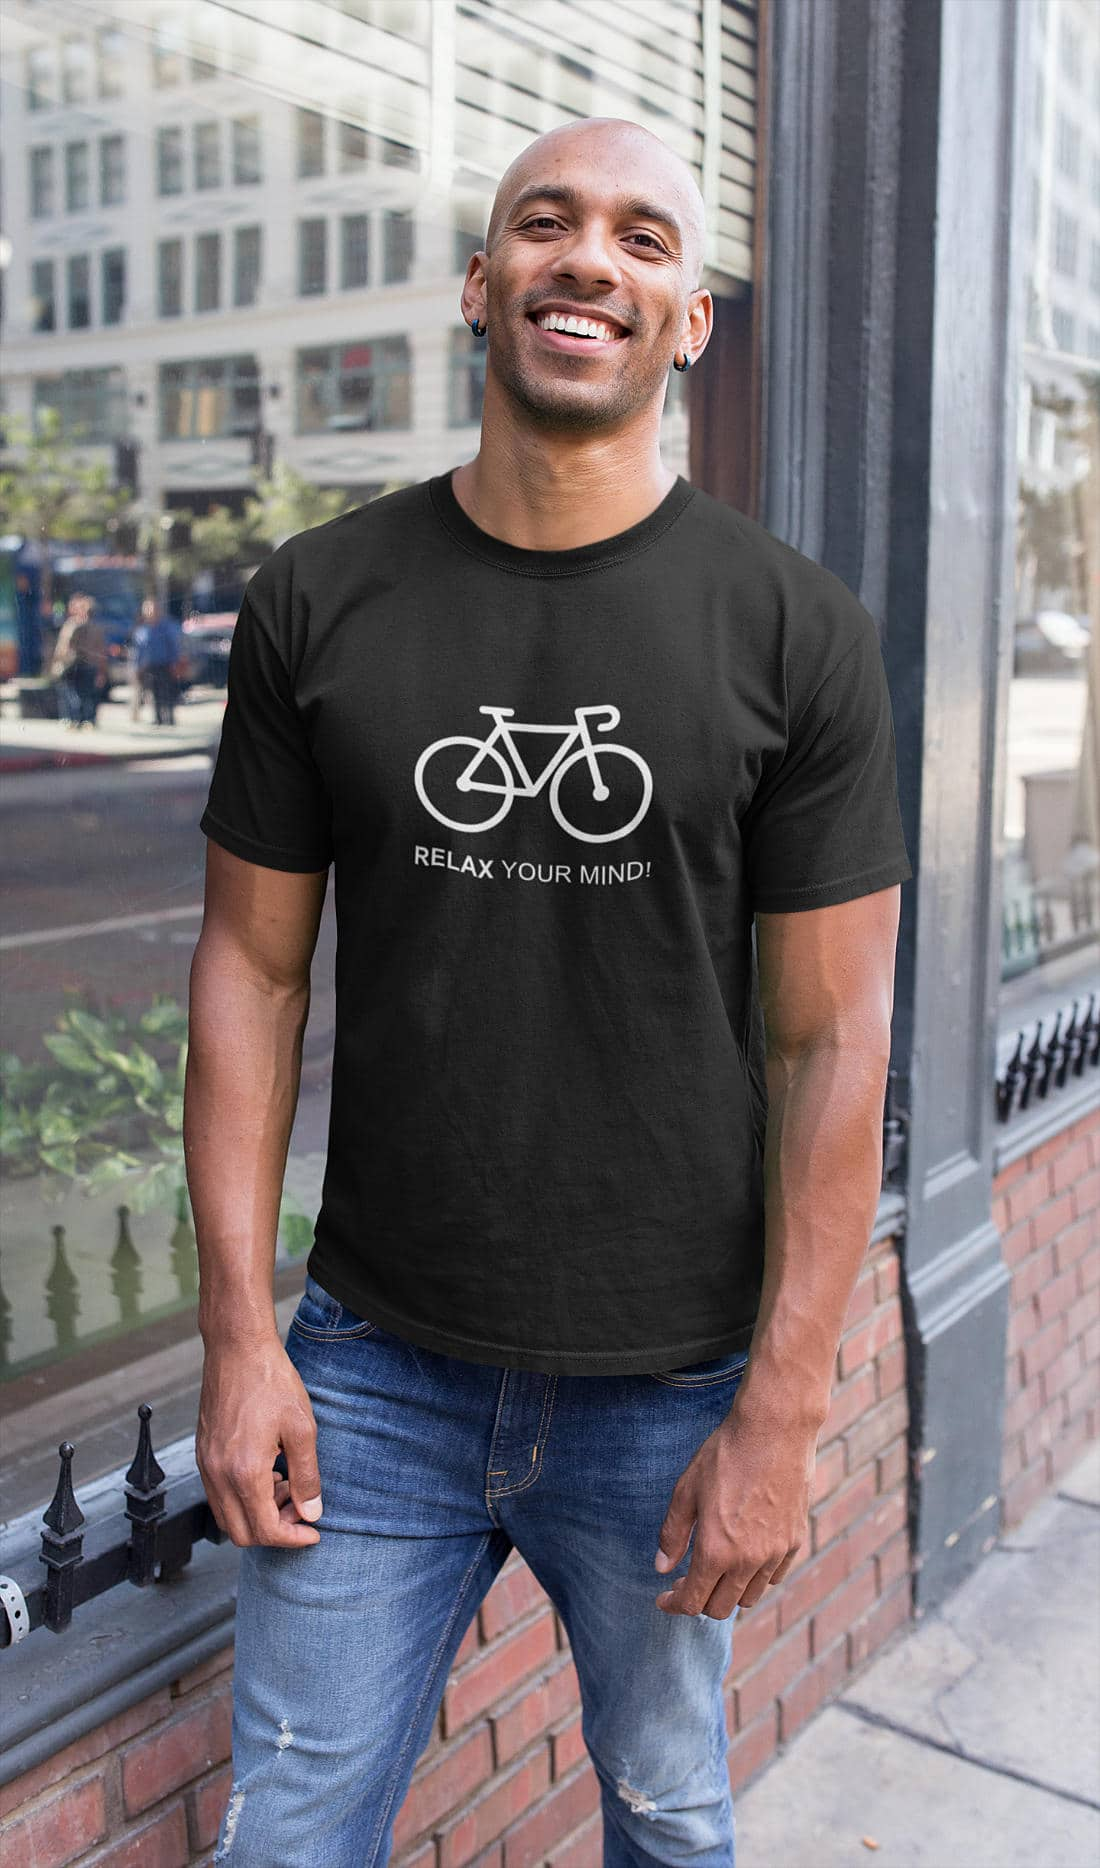 Fahrrad-T-Shirts-Relax your mind